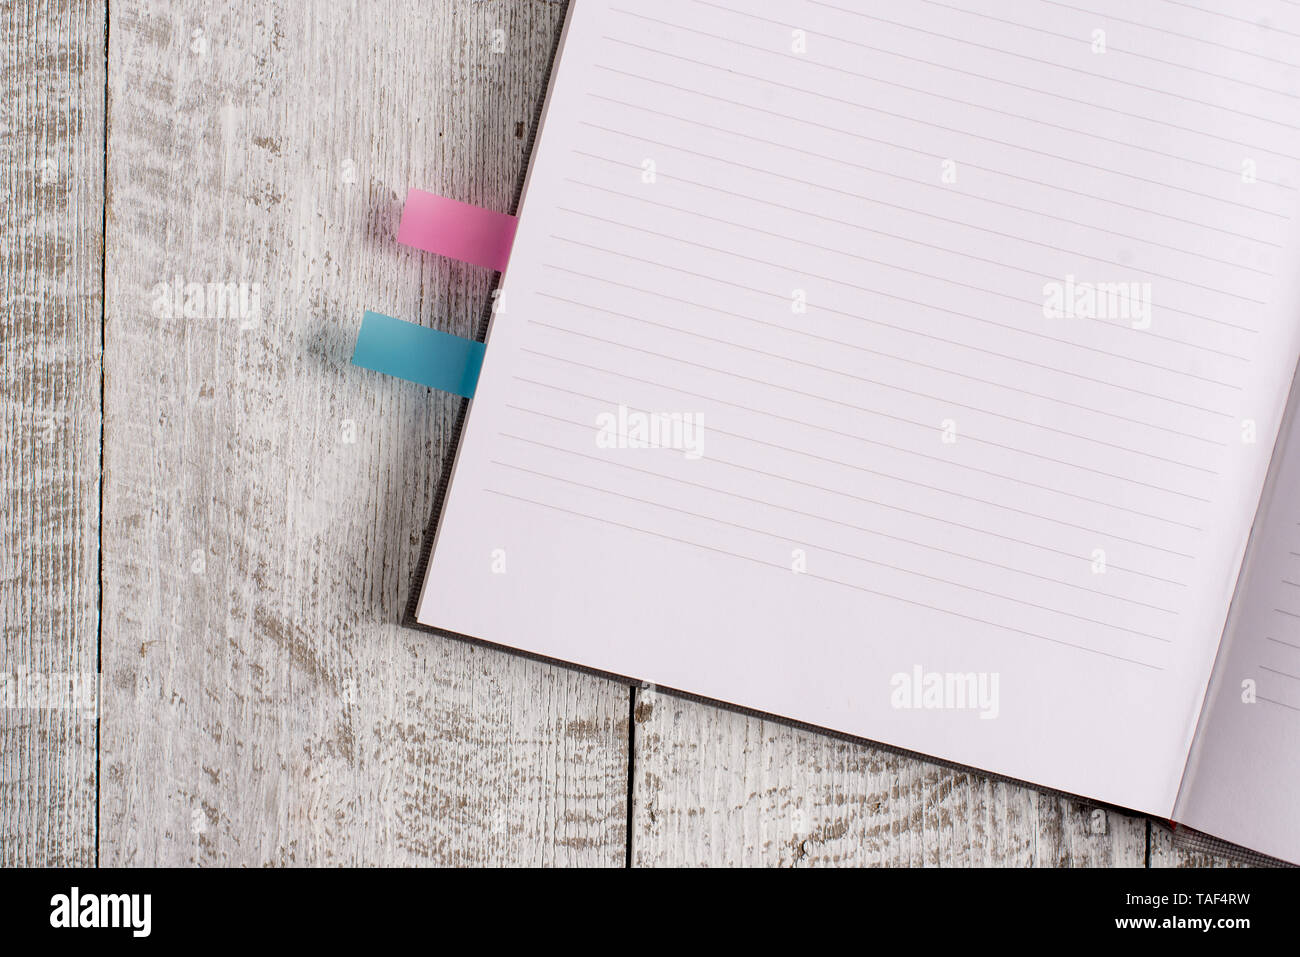 Thick pages notebook stationary placed above classic look wooden backdrop - Stock Image